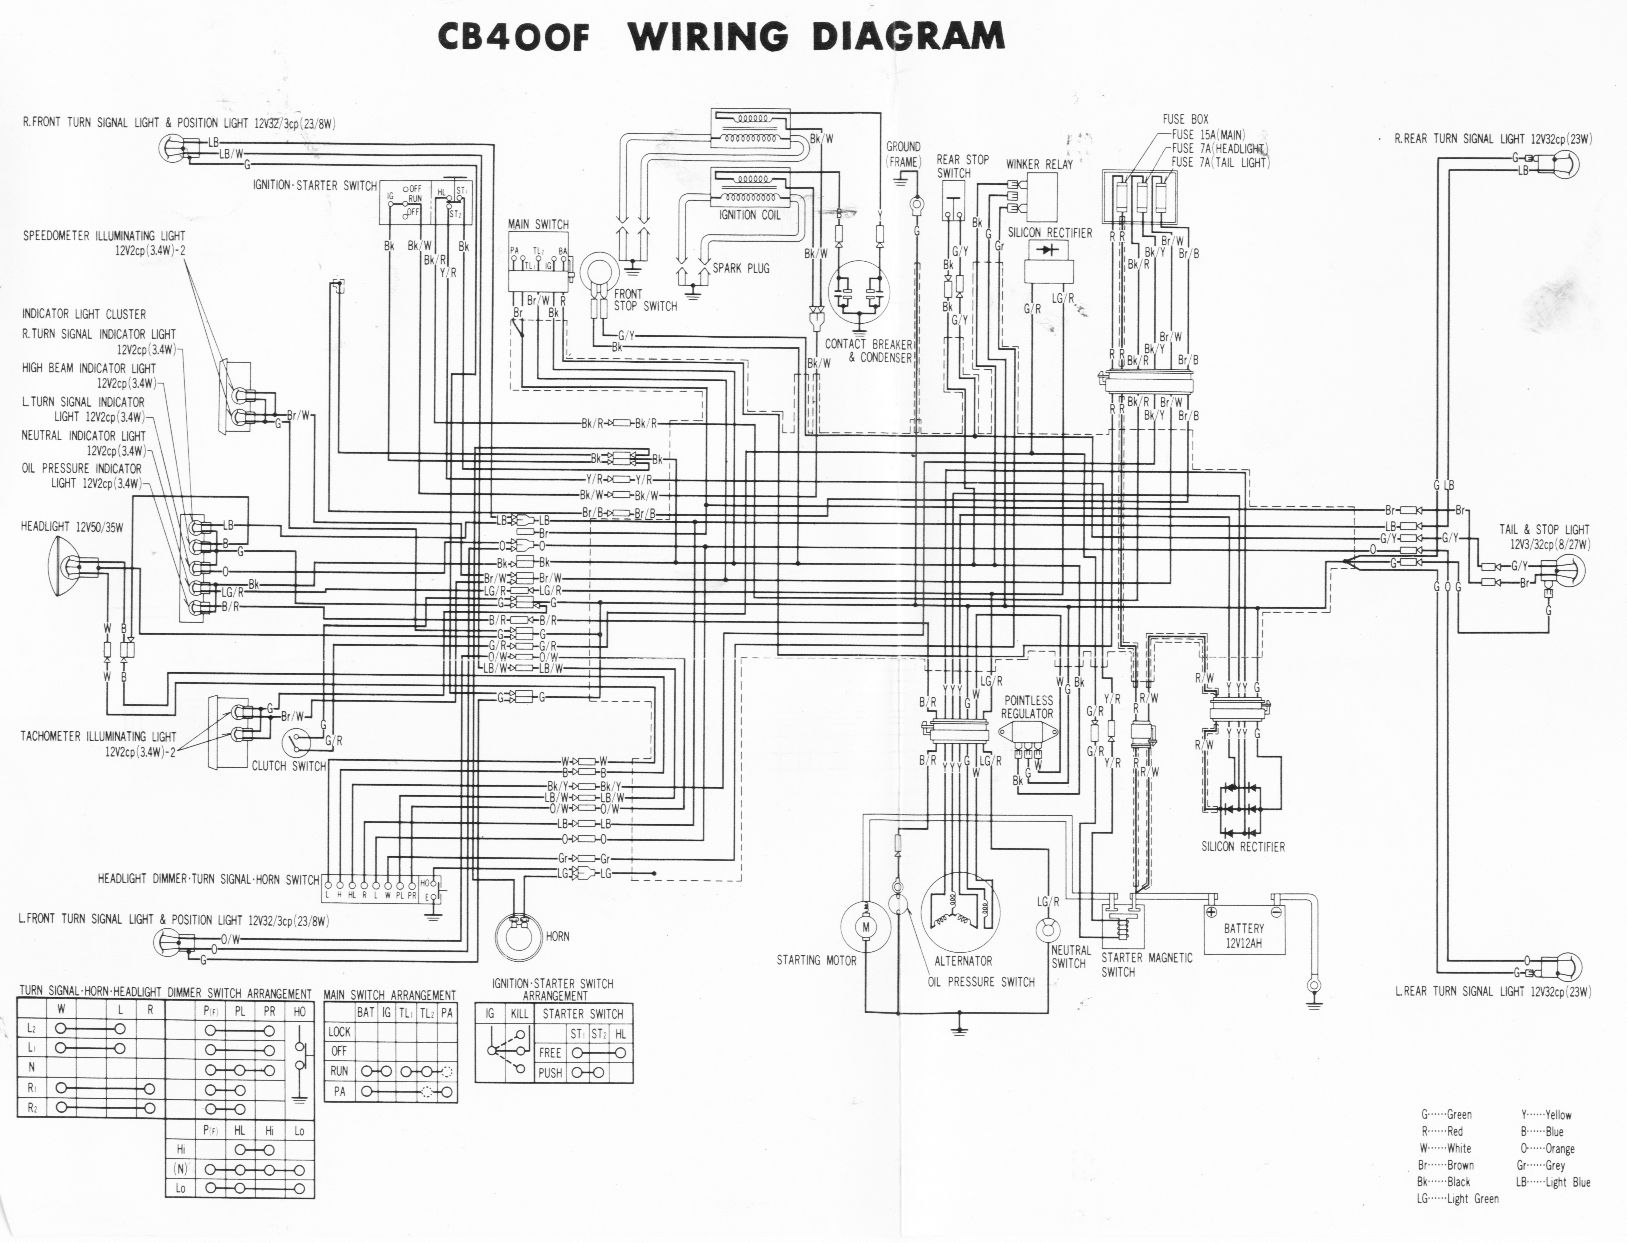 cb400f rh manuals sohc4 net Residential Electrical Wiring Diagrams Wiring Diagram Symbols